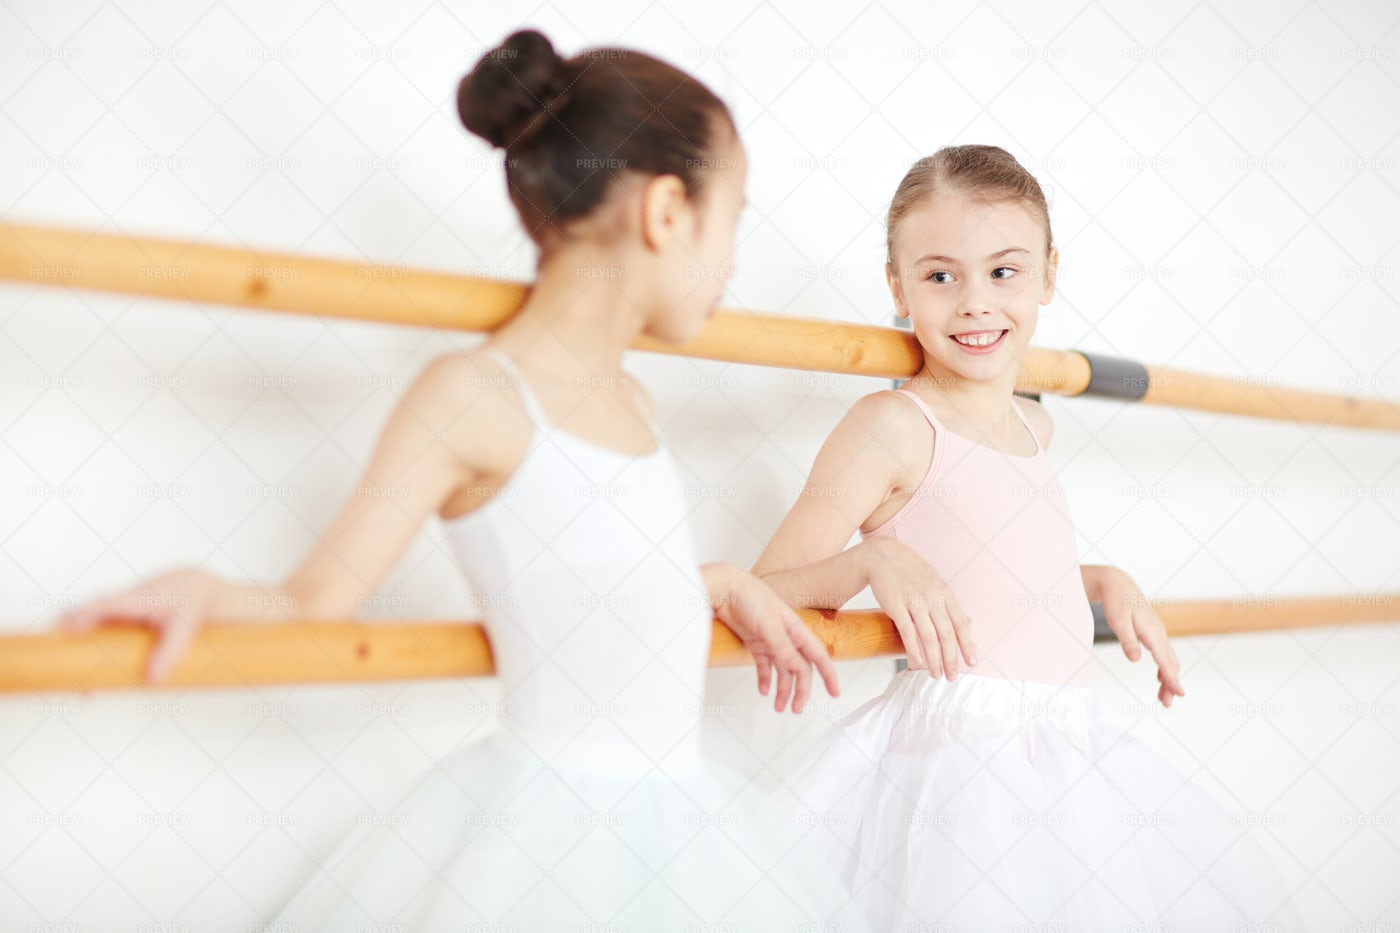 Little Performers: Stock Photos